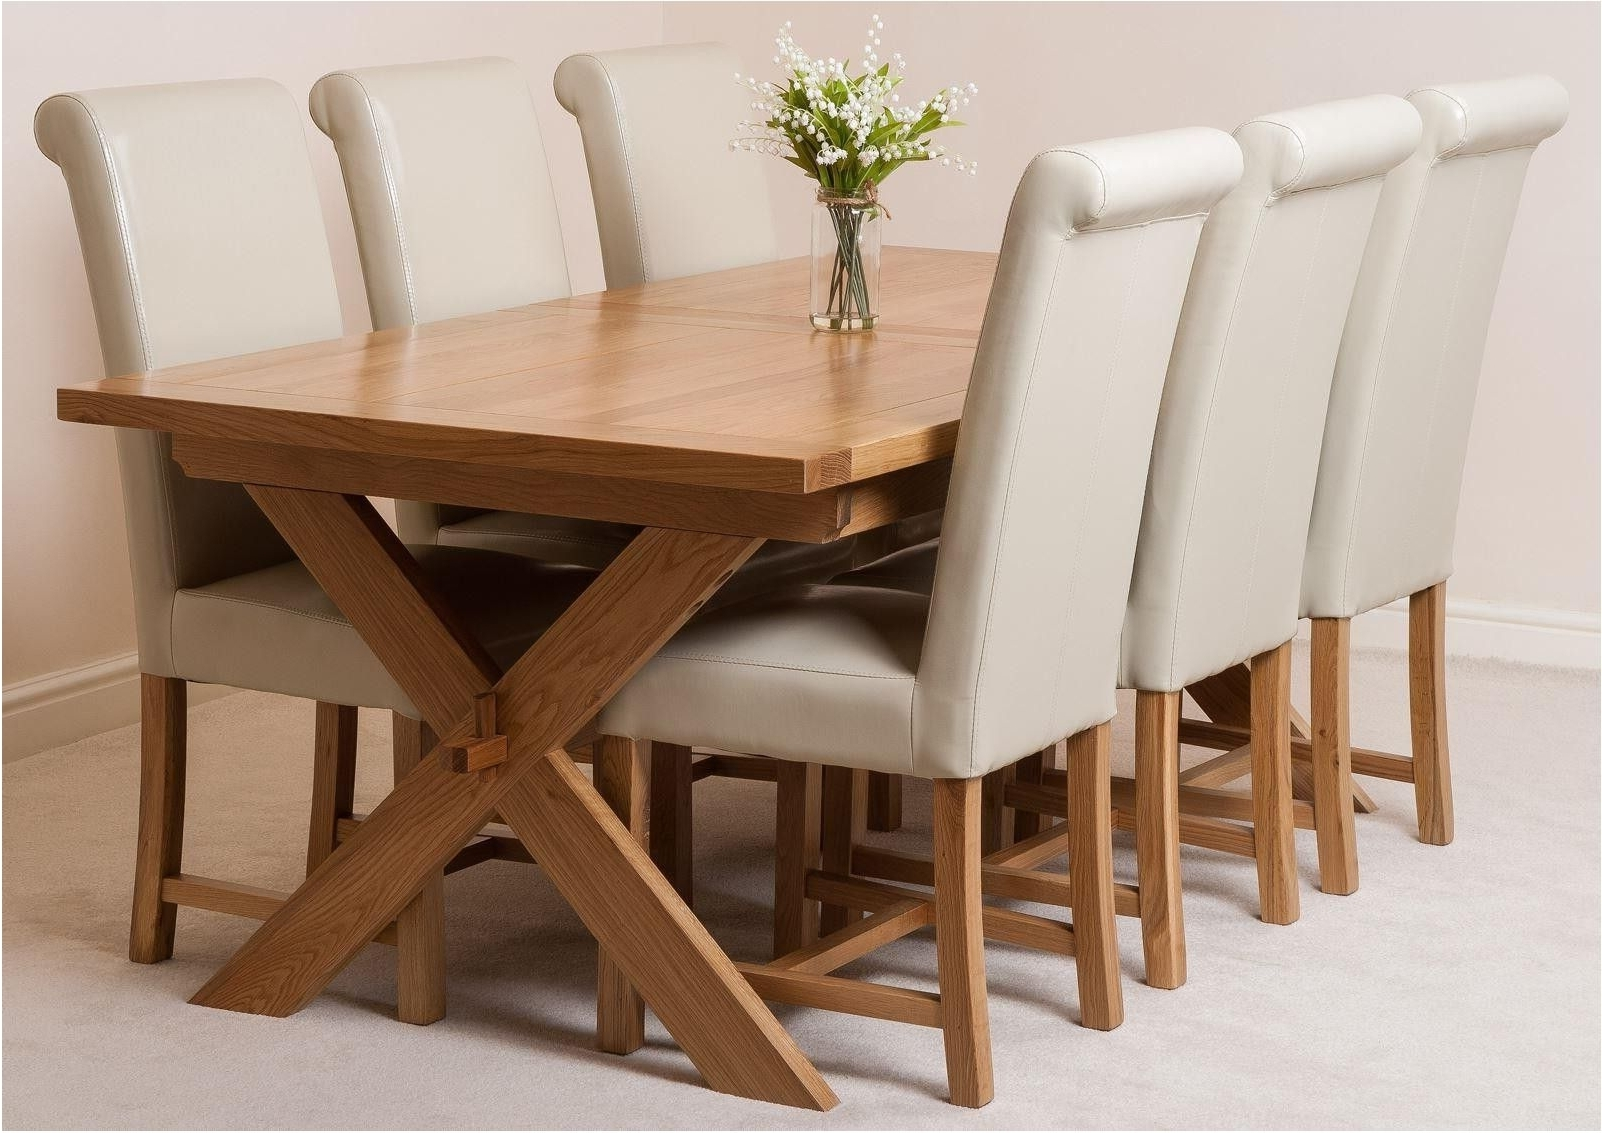 Breathtaking Vermont Extending Oak Dining Table With 6 Black Lola With Regard To Most Current Oak Extending Dining Tables And 6 Chairs (Gallery 4 of 25)